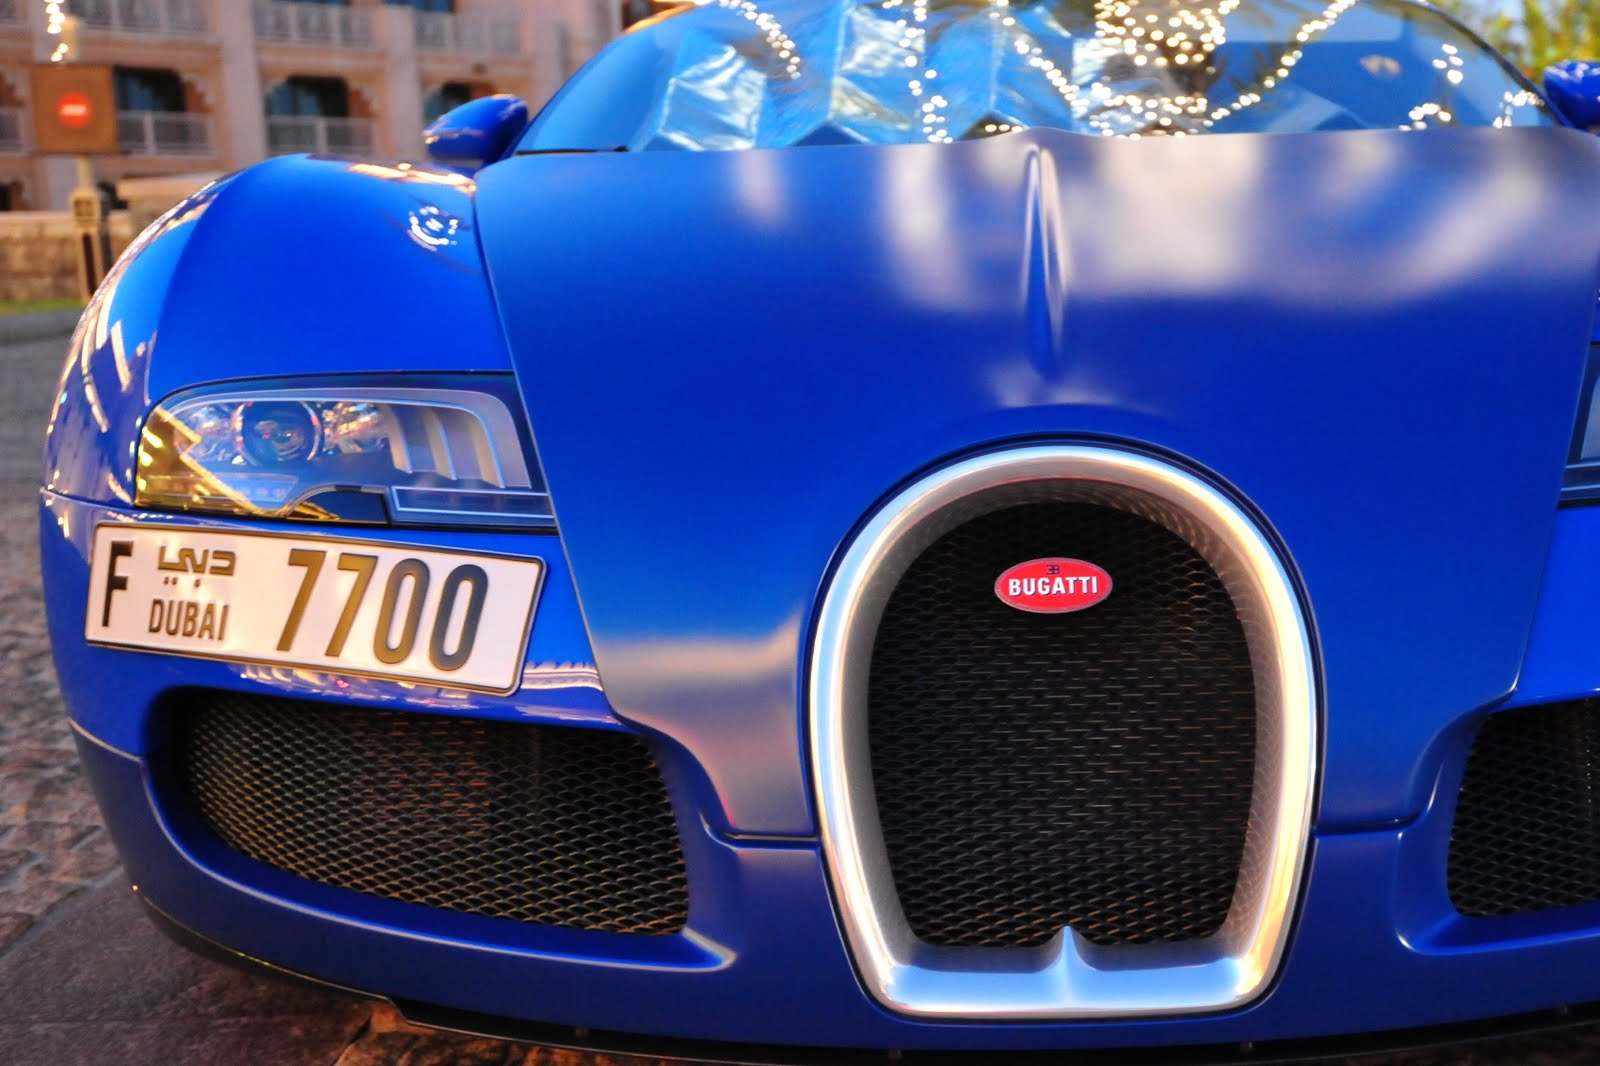 The Bugatti Veyron In Dubai   The Worldu0027s Most Expensive Car